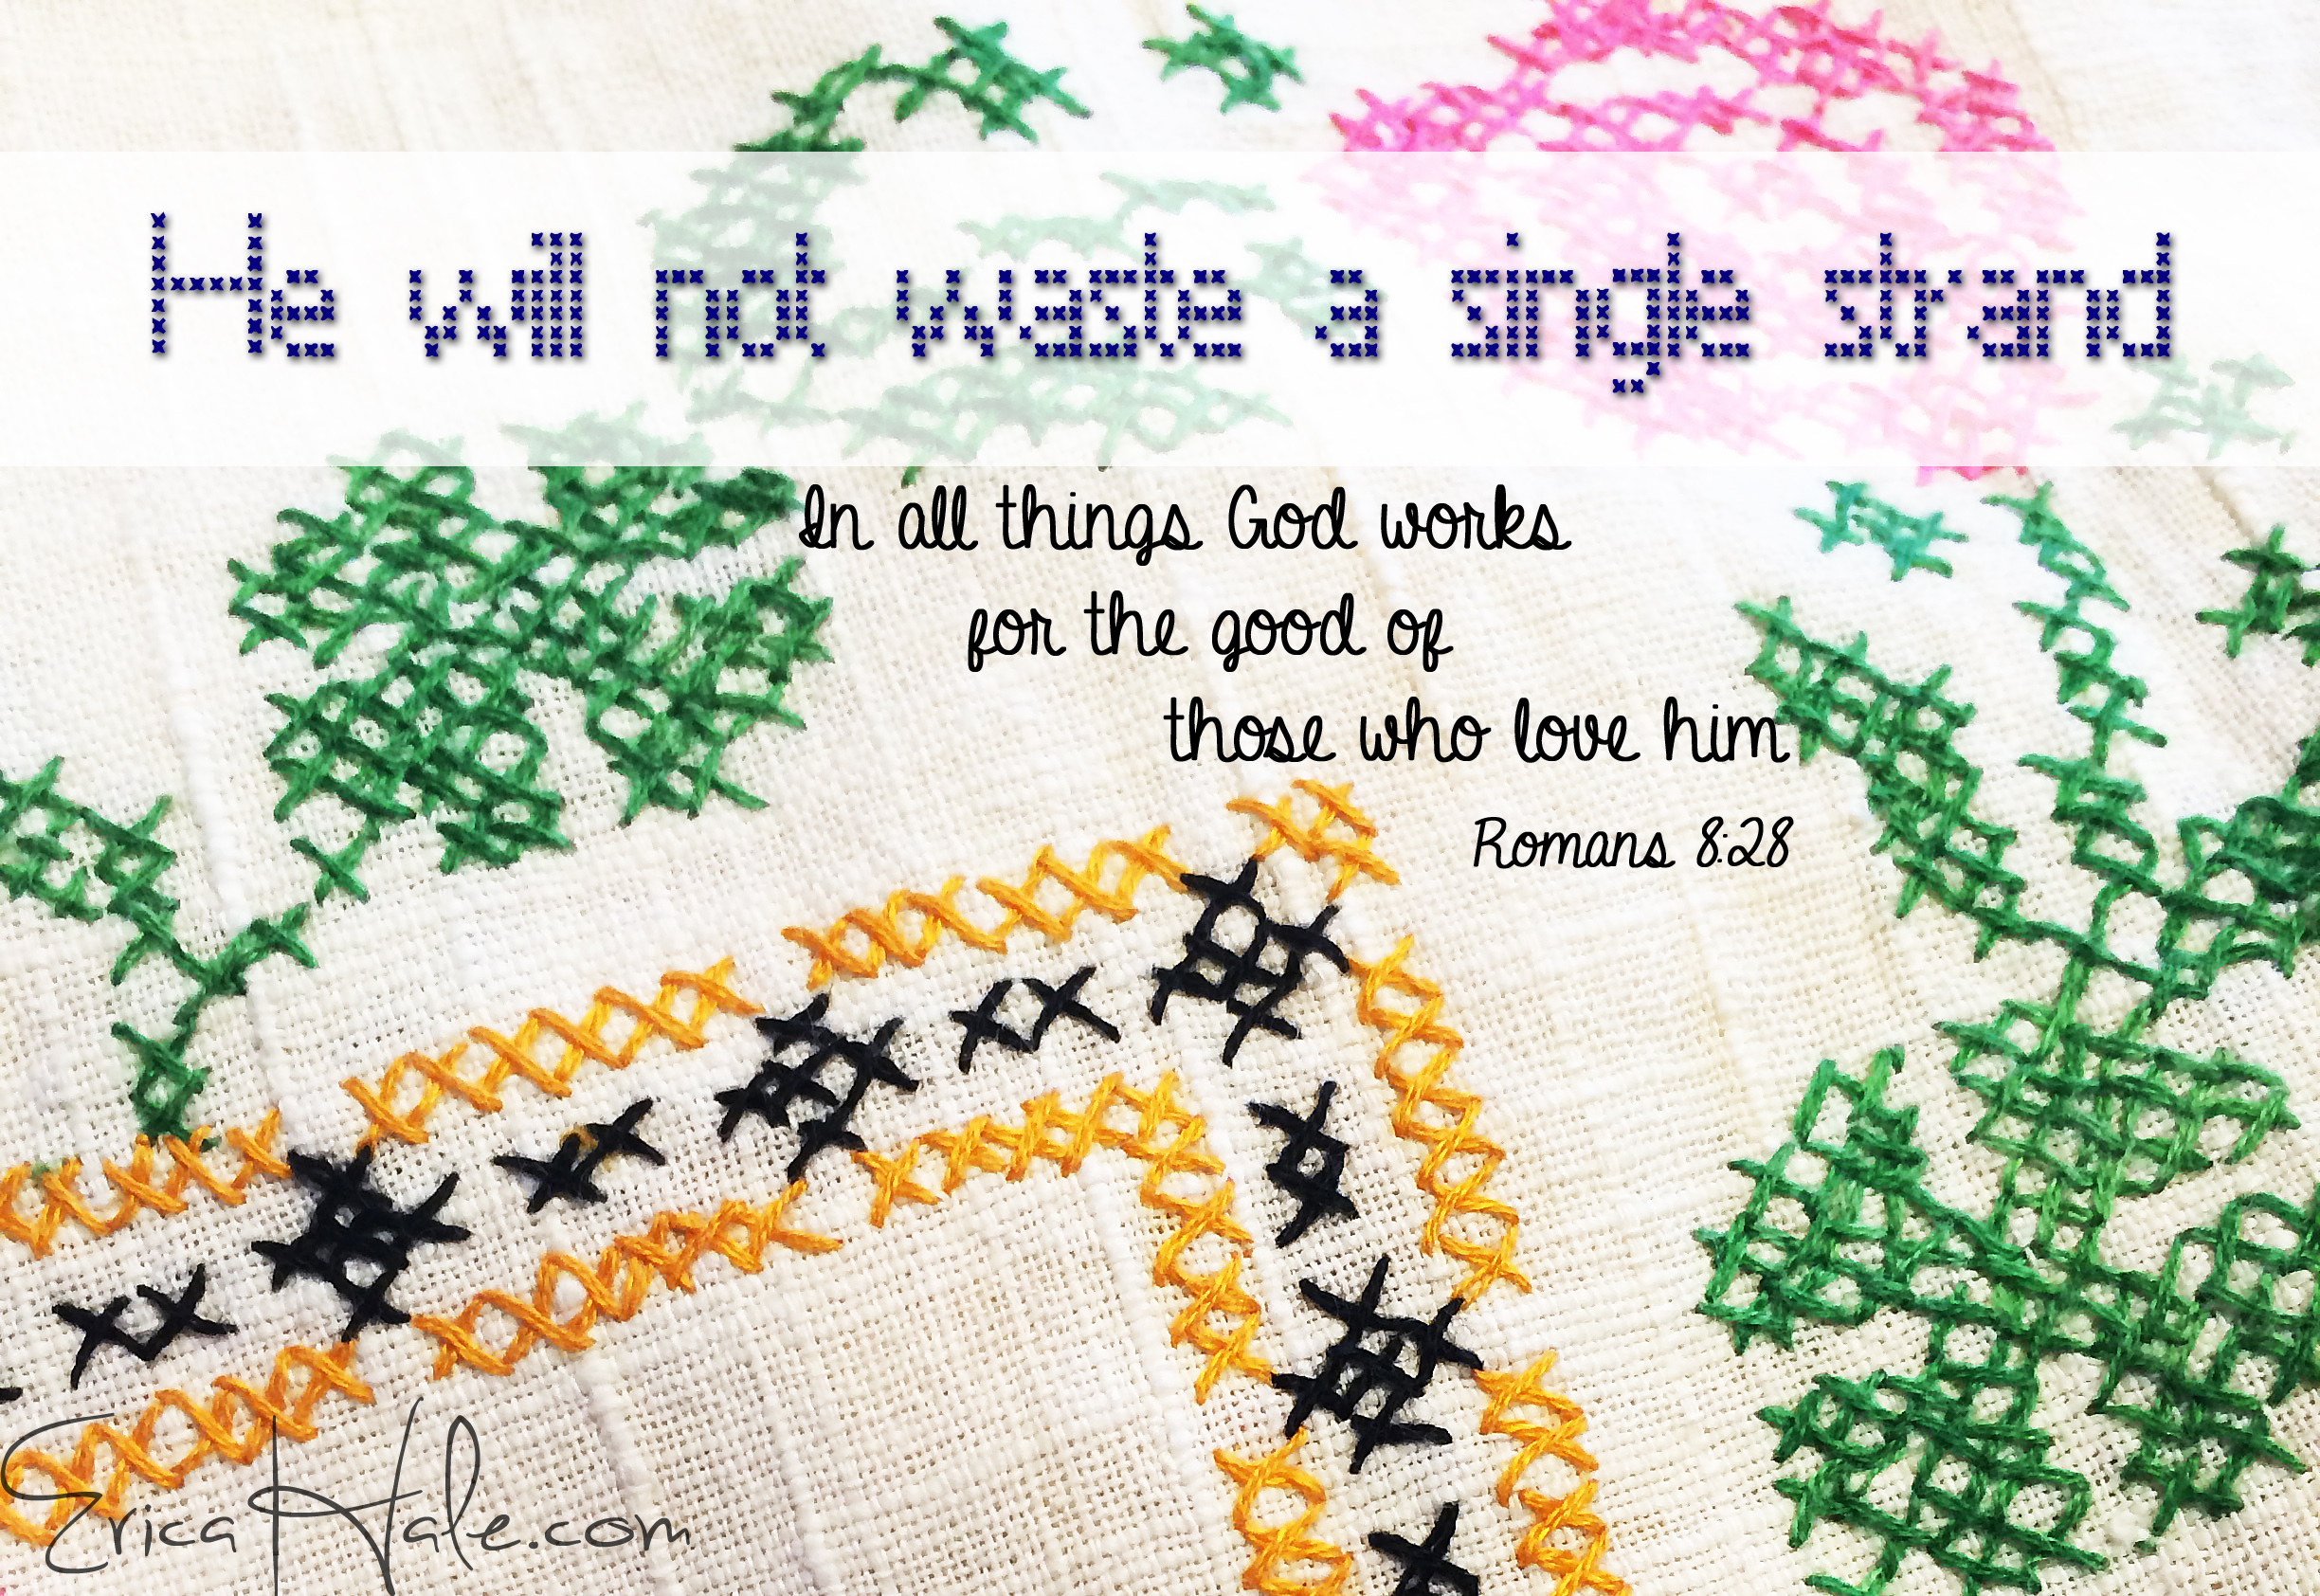 Not a single strand: God weaves even the hard things into something beautiful.